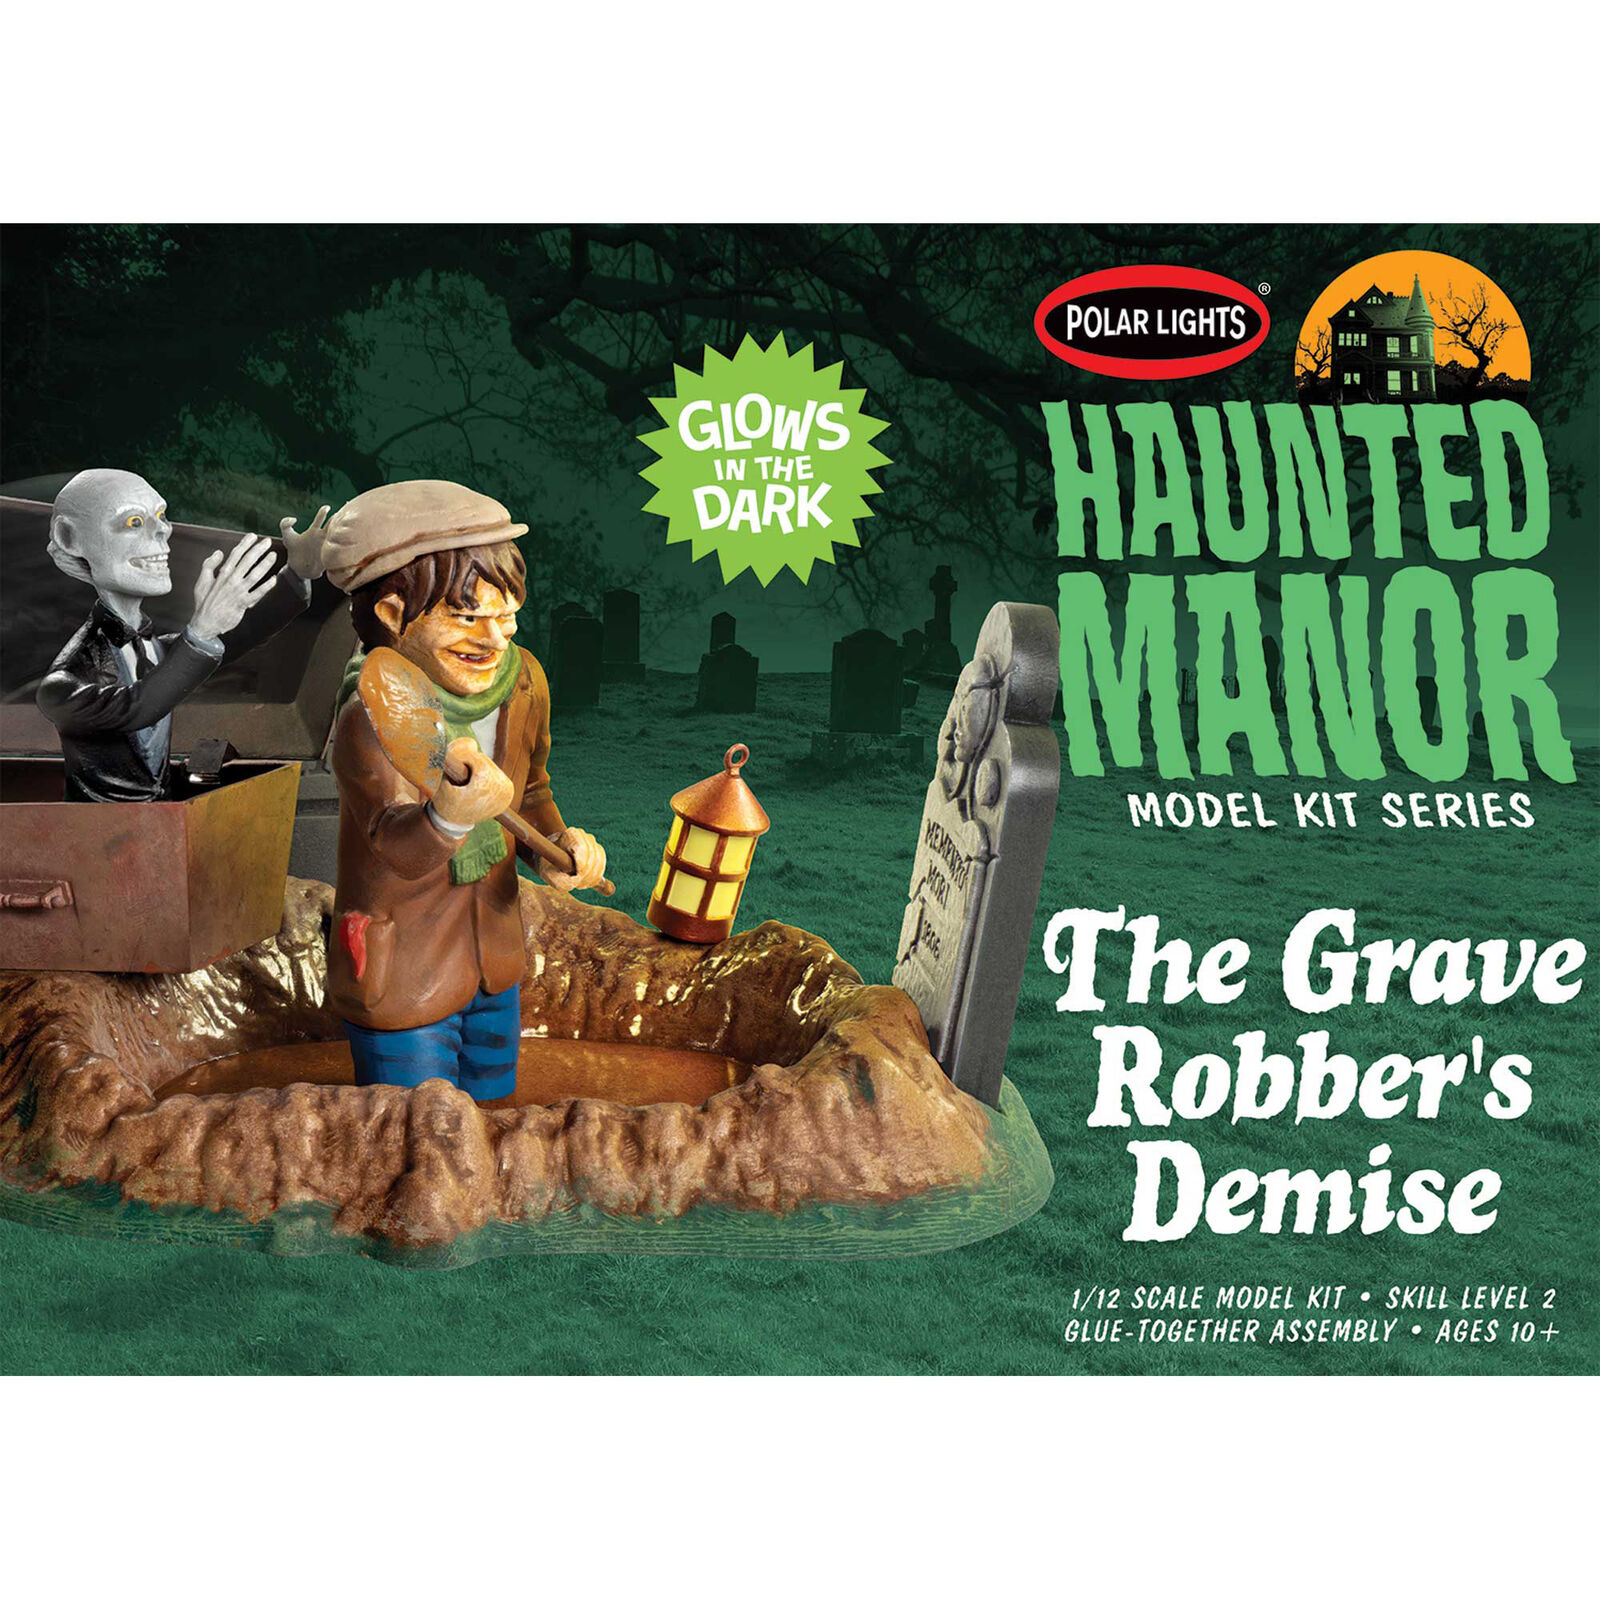 1/12 Haunted Manor The Grave Robber's Demise